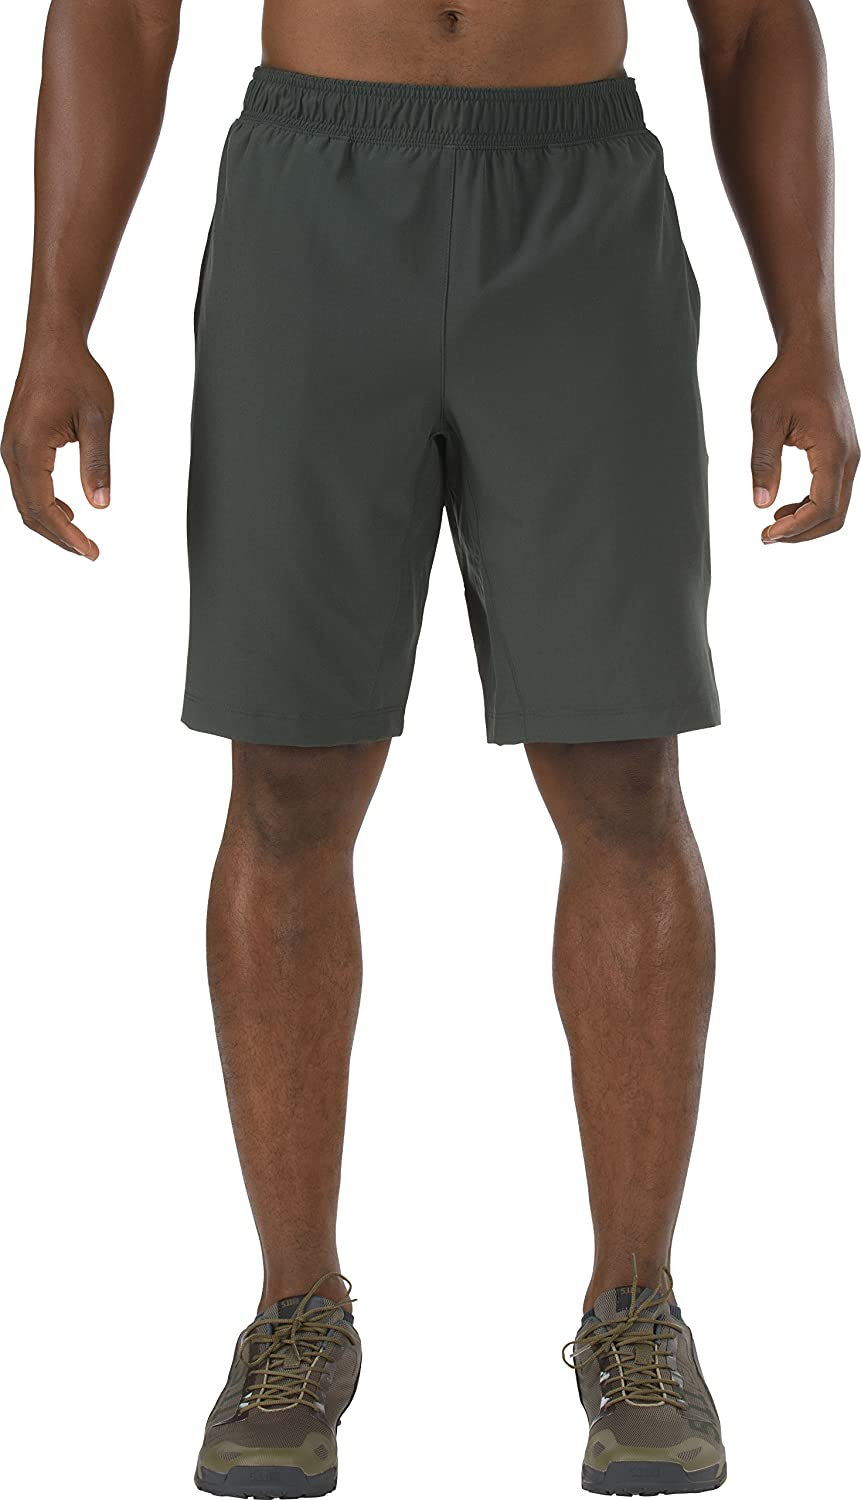 5.11 Tactical Men's Recon Training Shorts